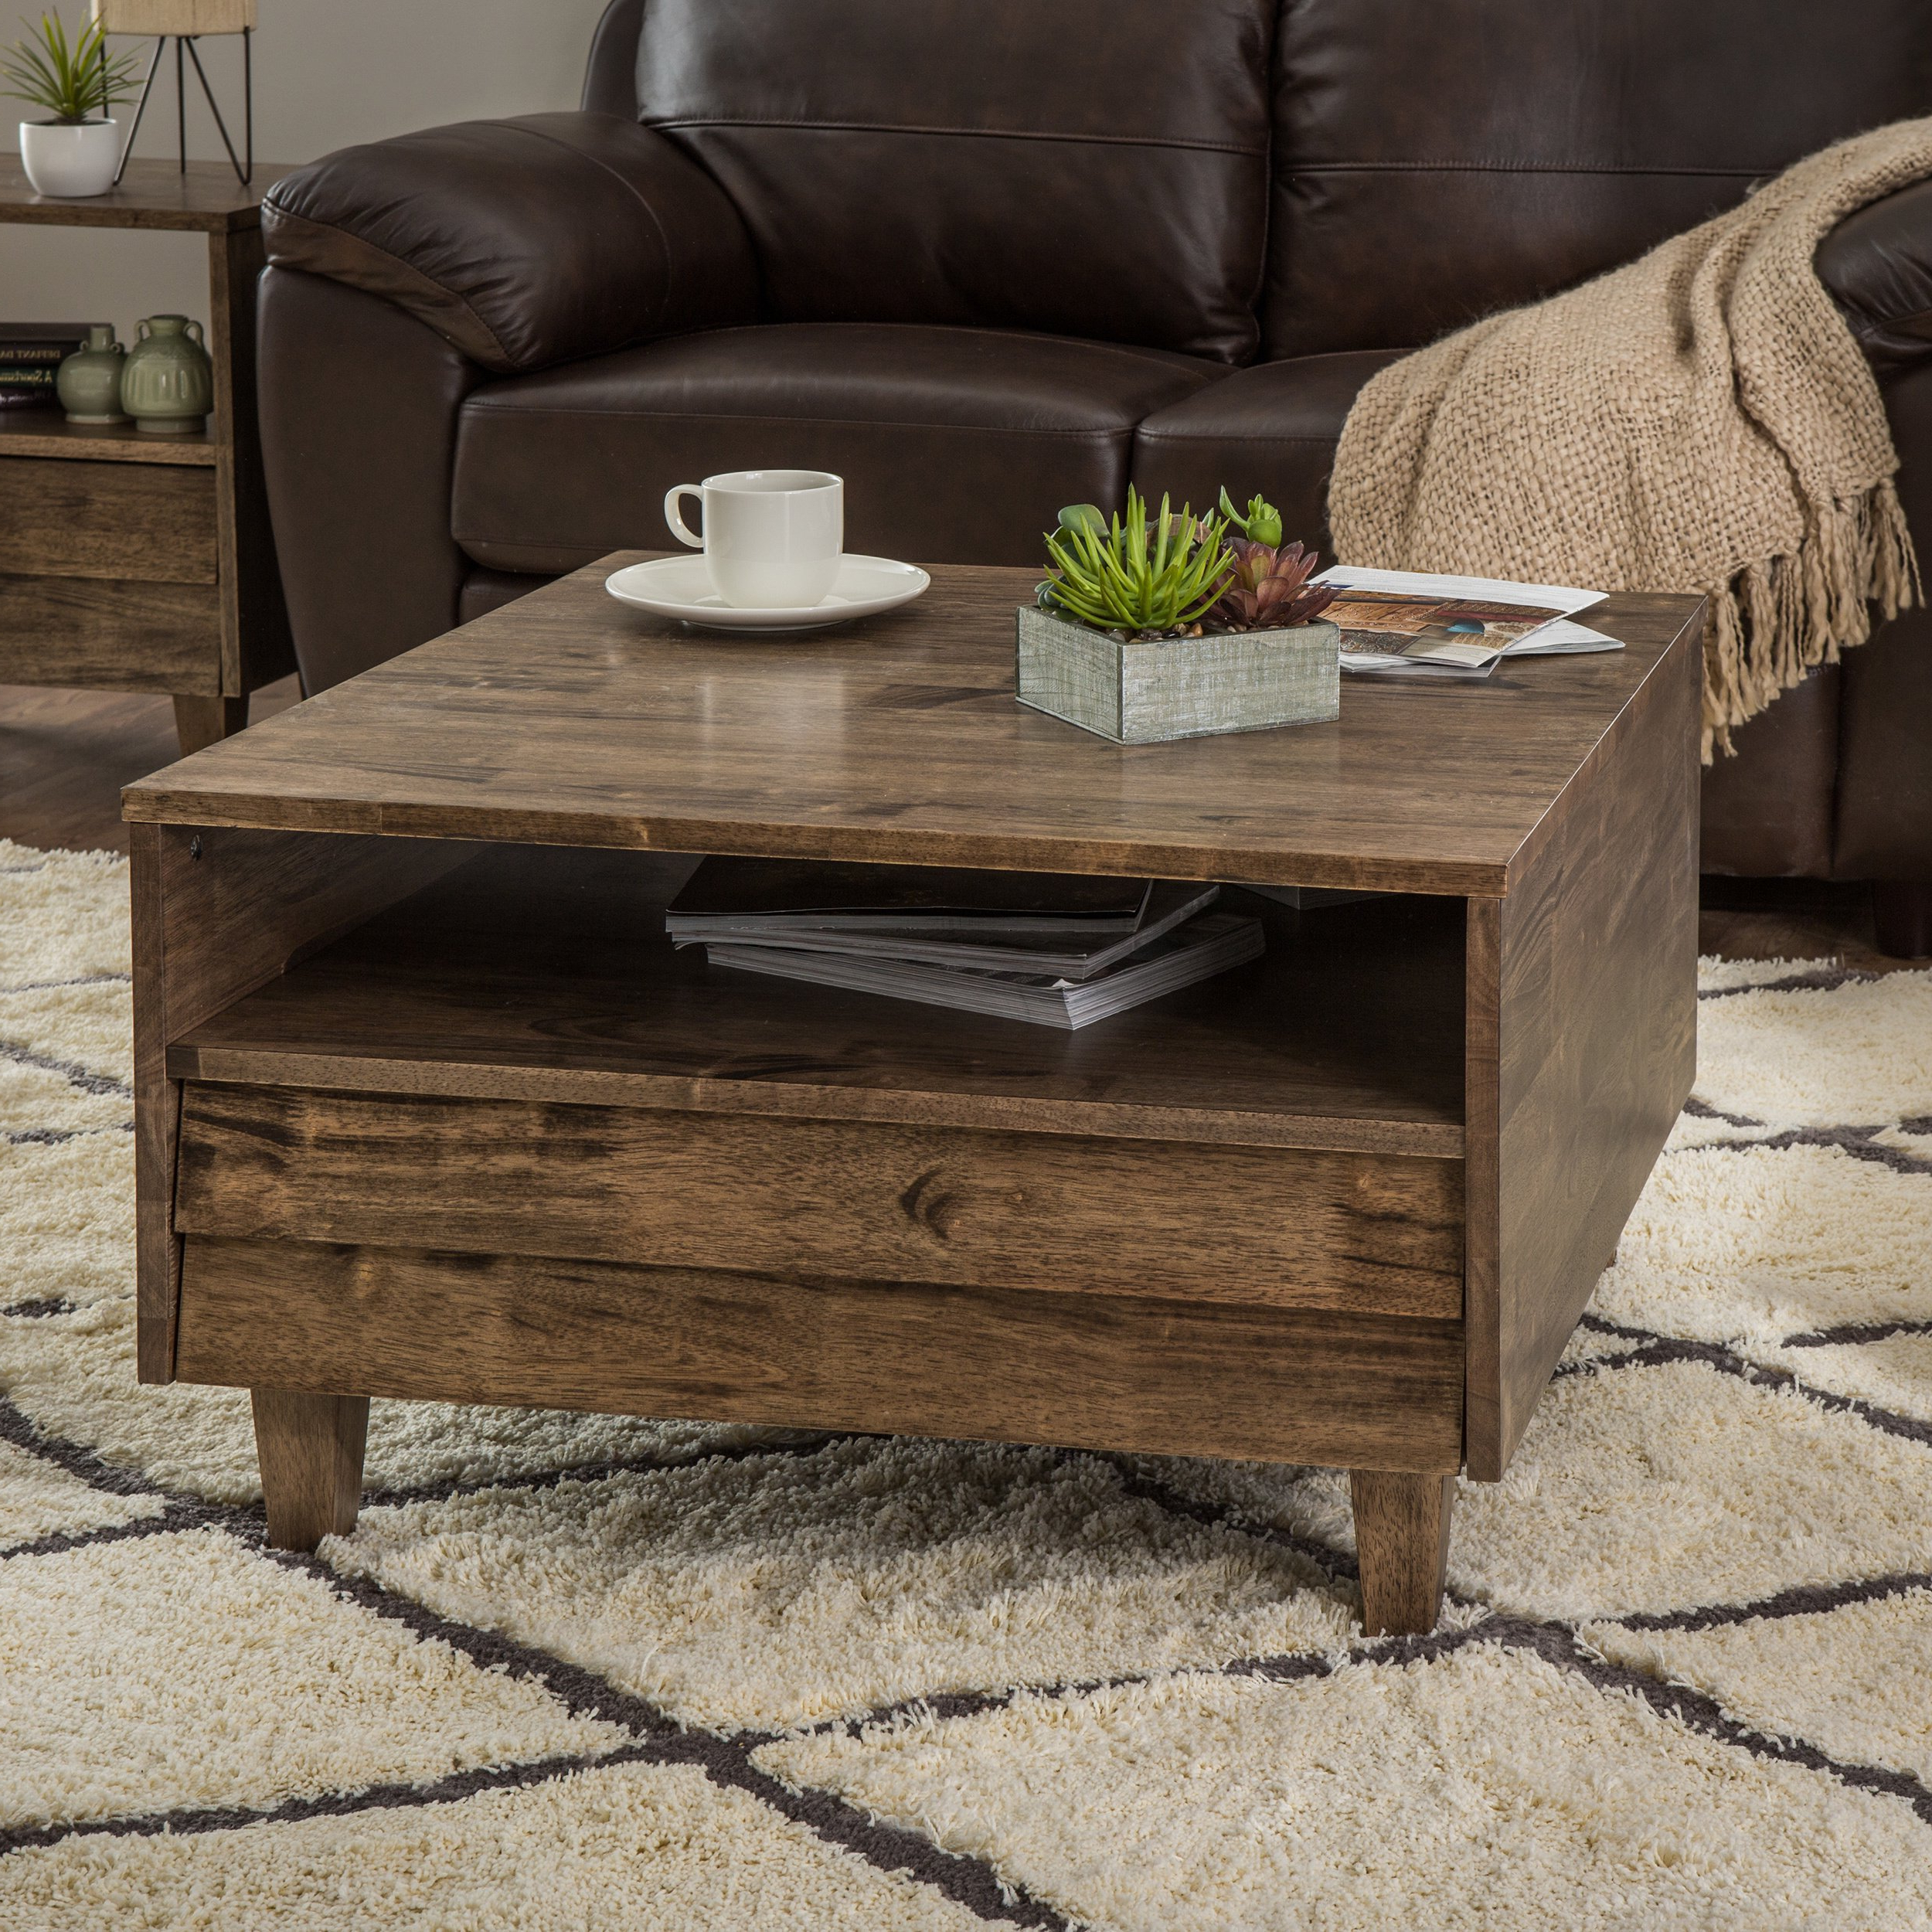 Natural 2 Drawer Shutter Coffee Tables